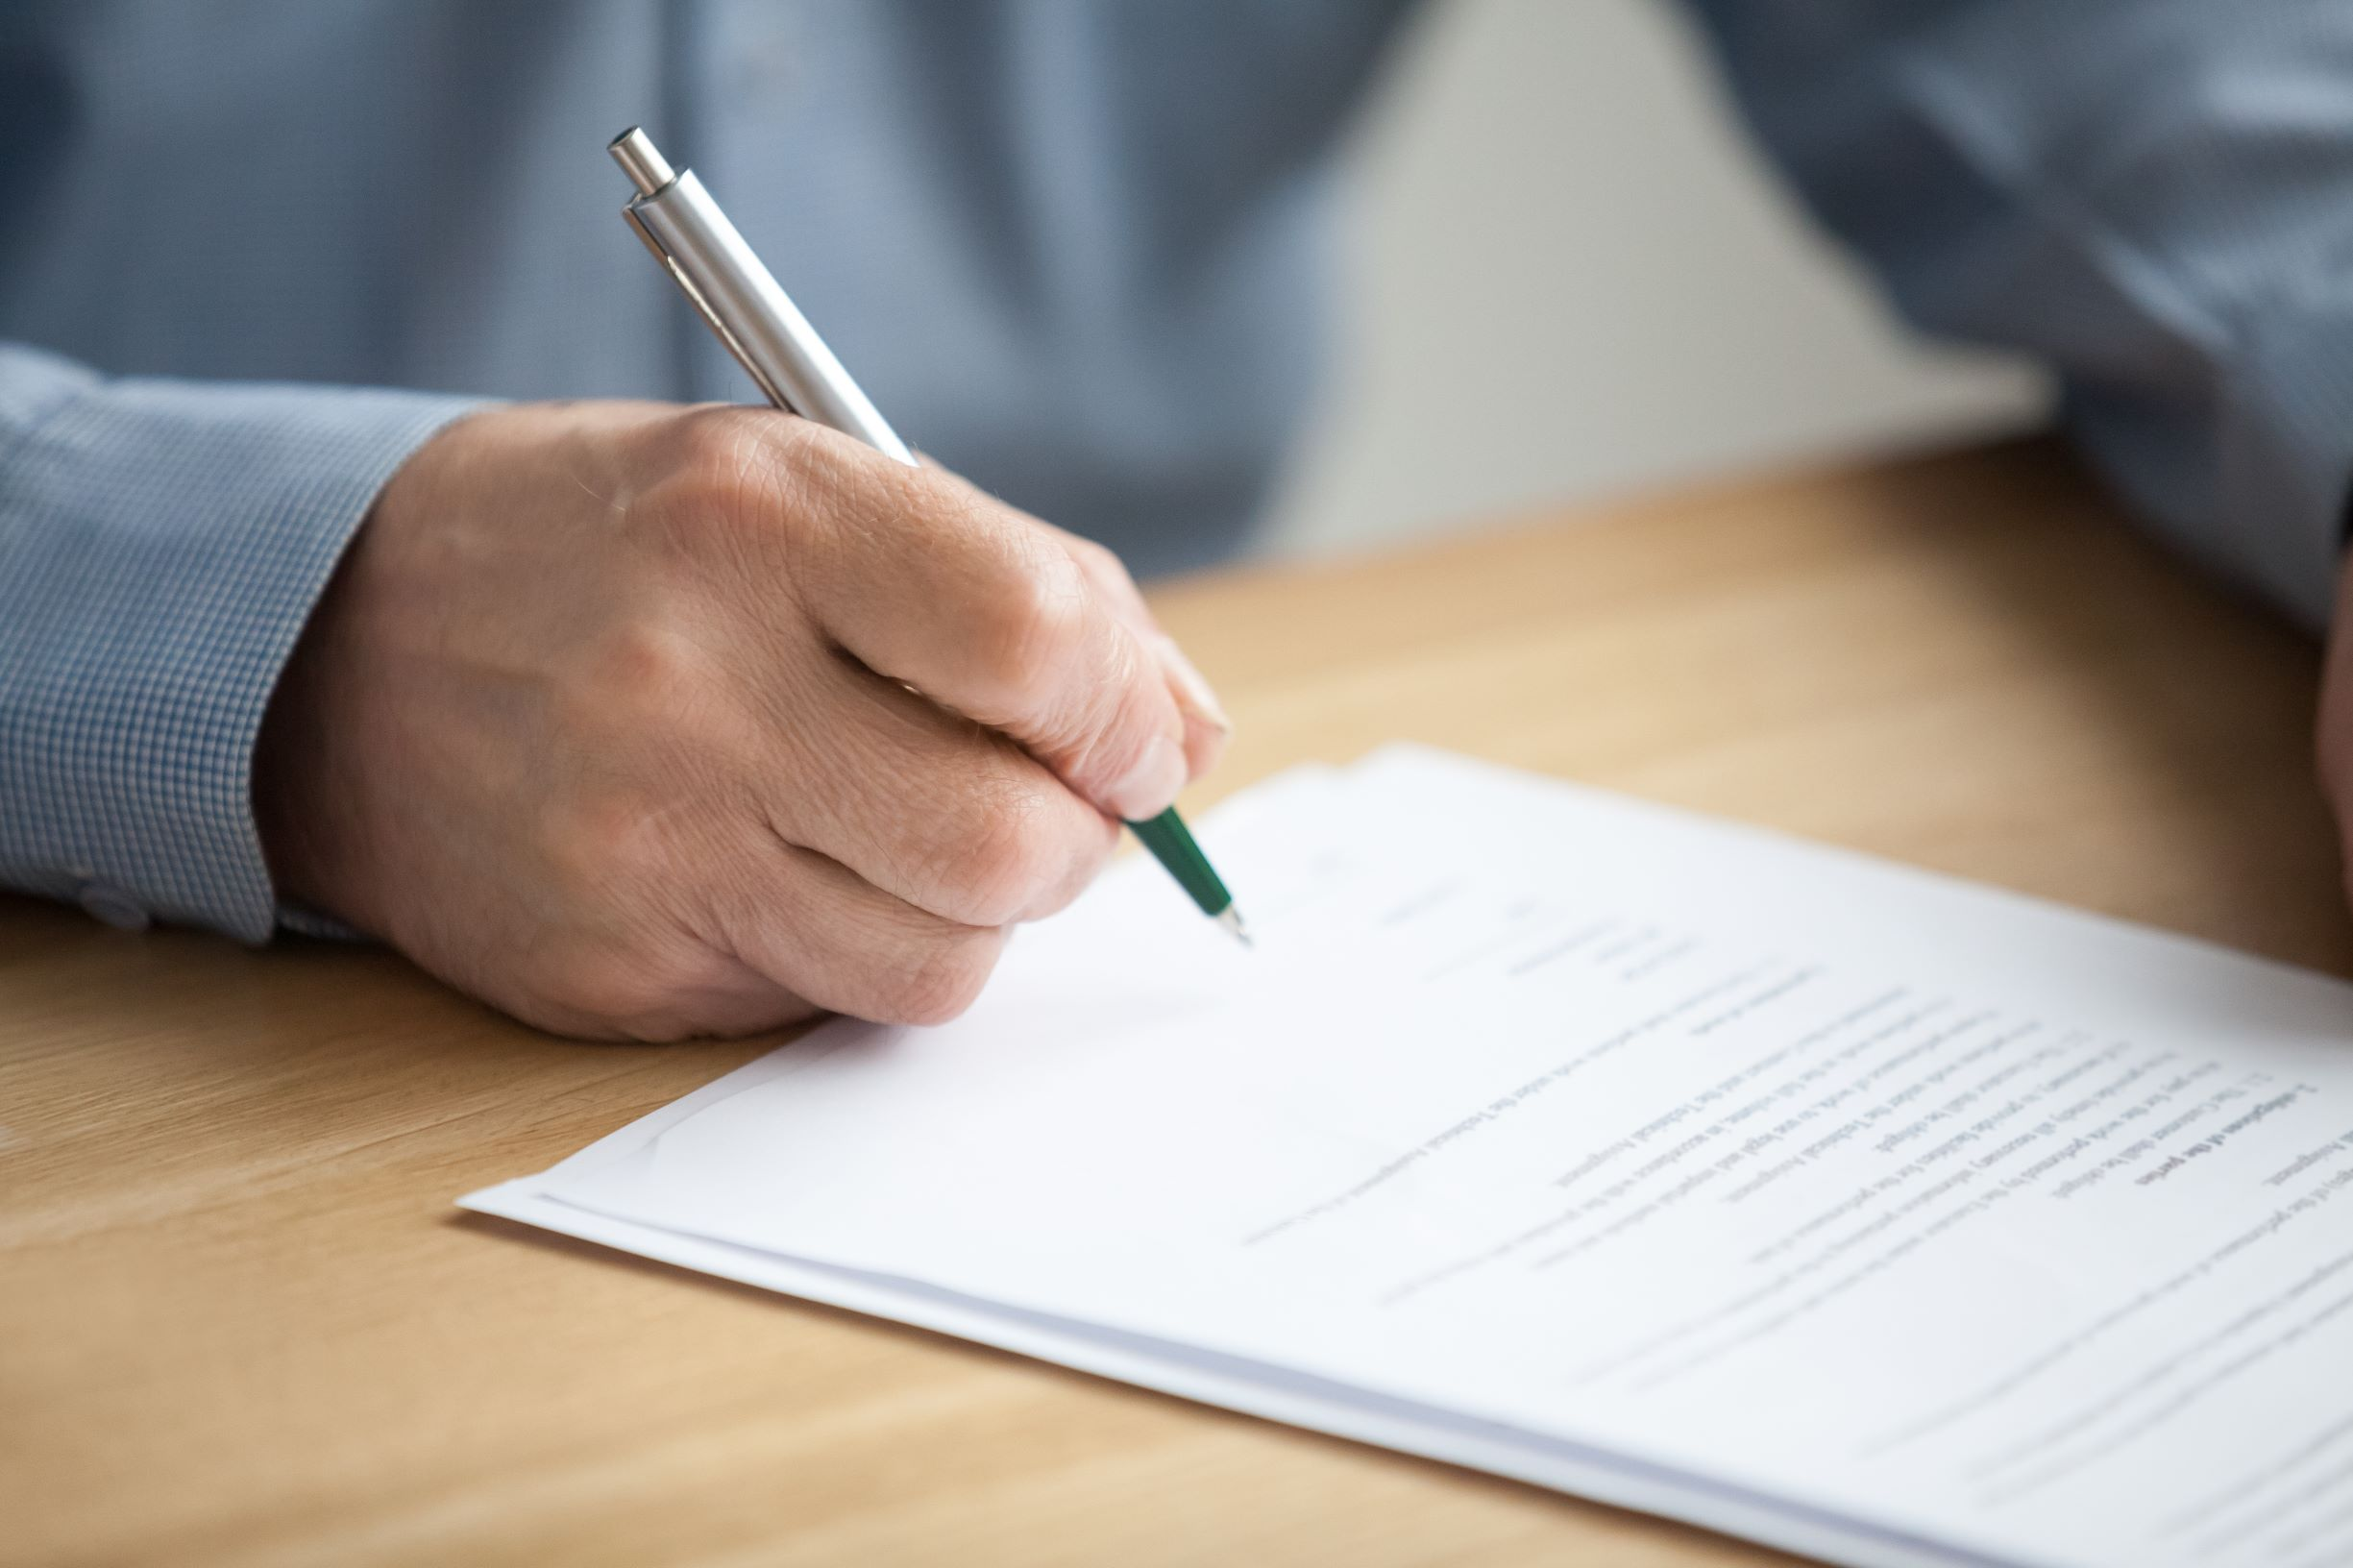 Consider writing an ethical will